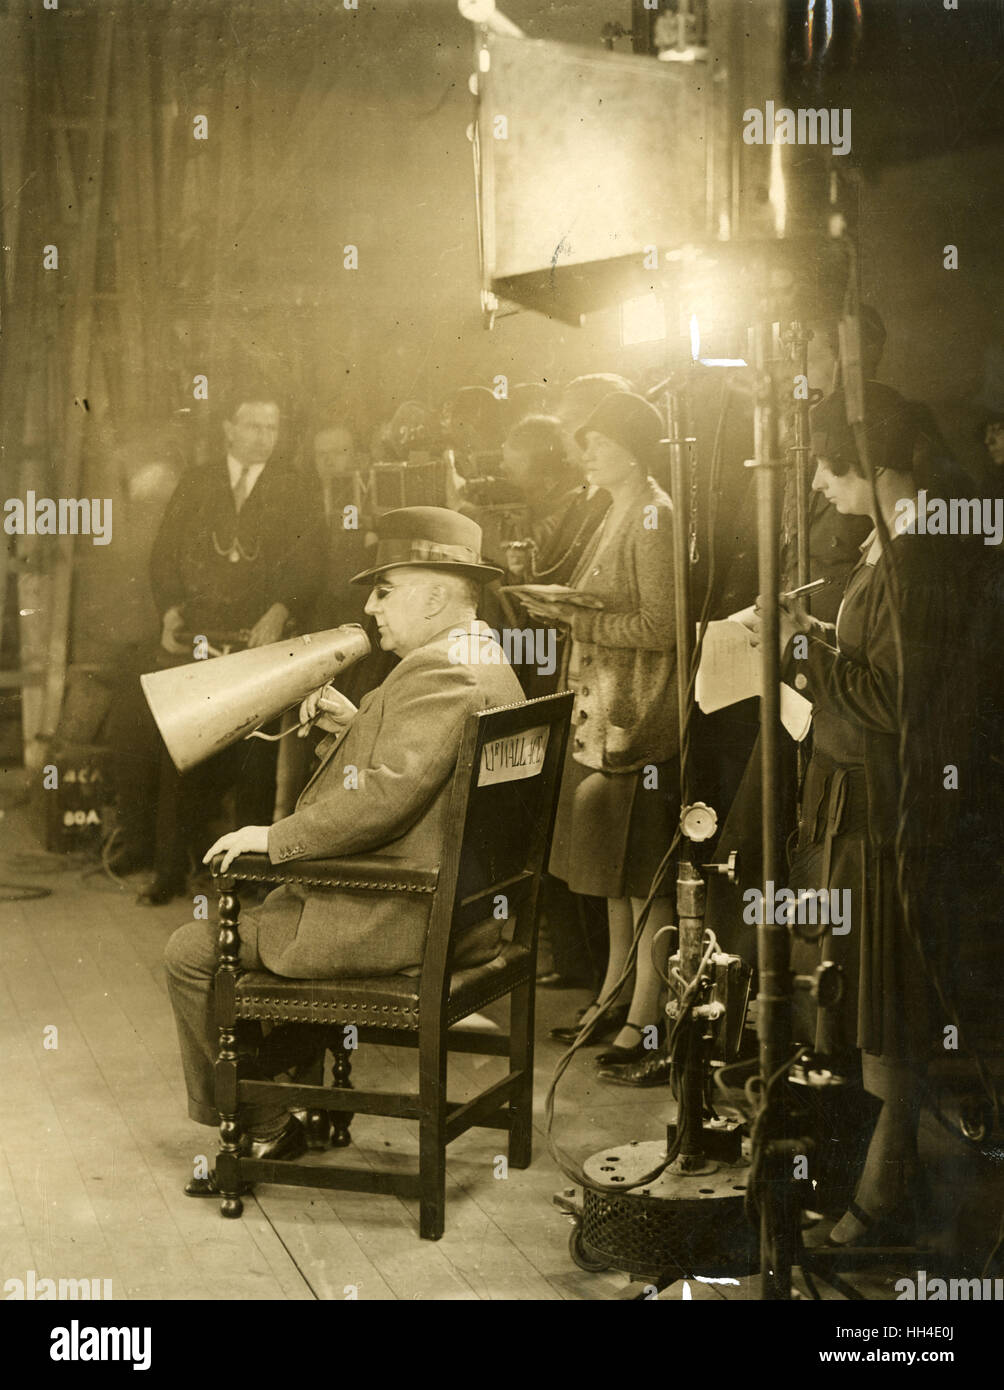 EDGAR WALLACE  English writer of popular thrillers, directing the  film 'Red Aces' at  Beaconsfield in 1929 - Stock Image